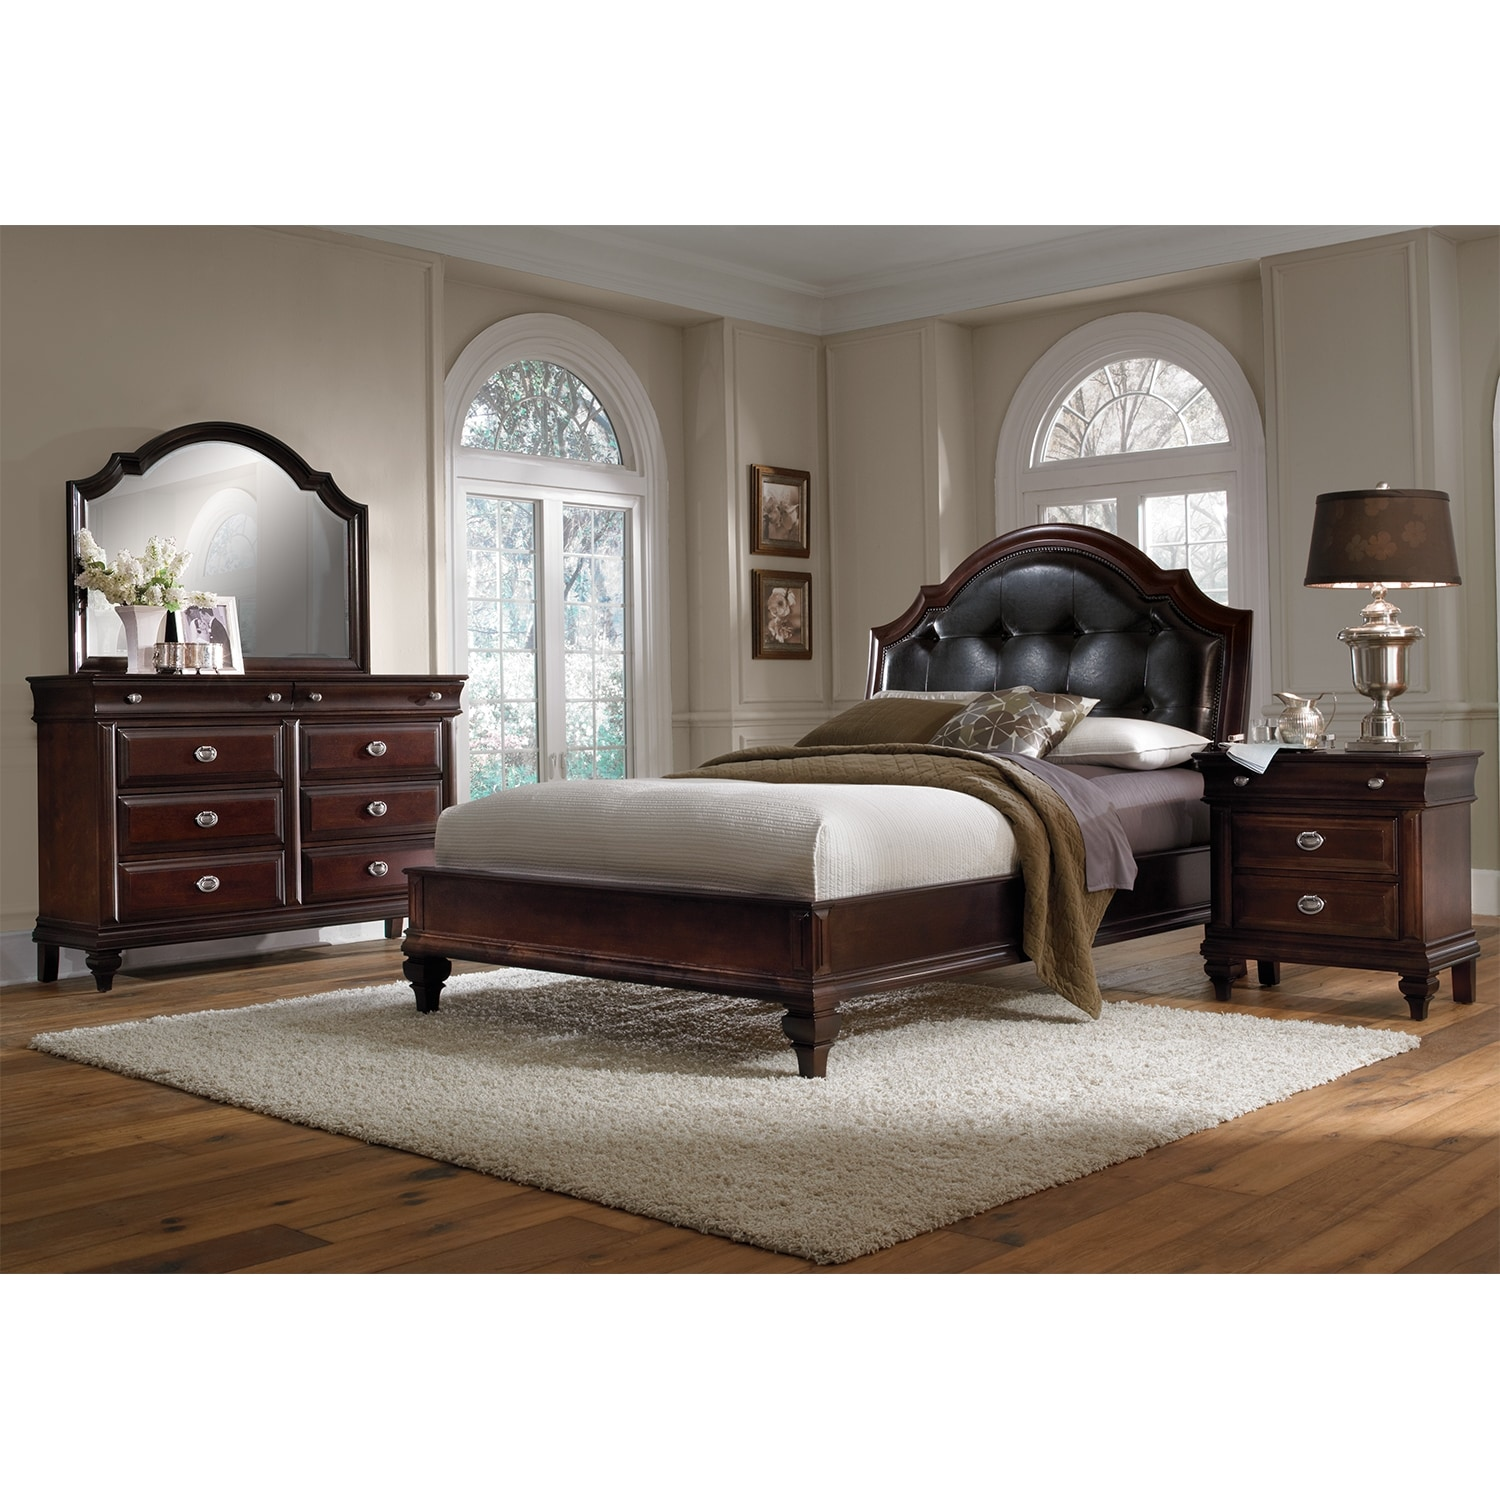 Manhattan Queen Bed Cherry Value City Furniture